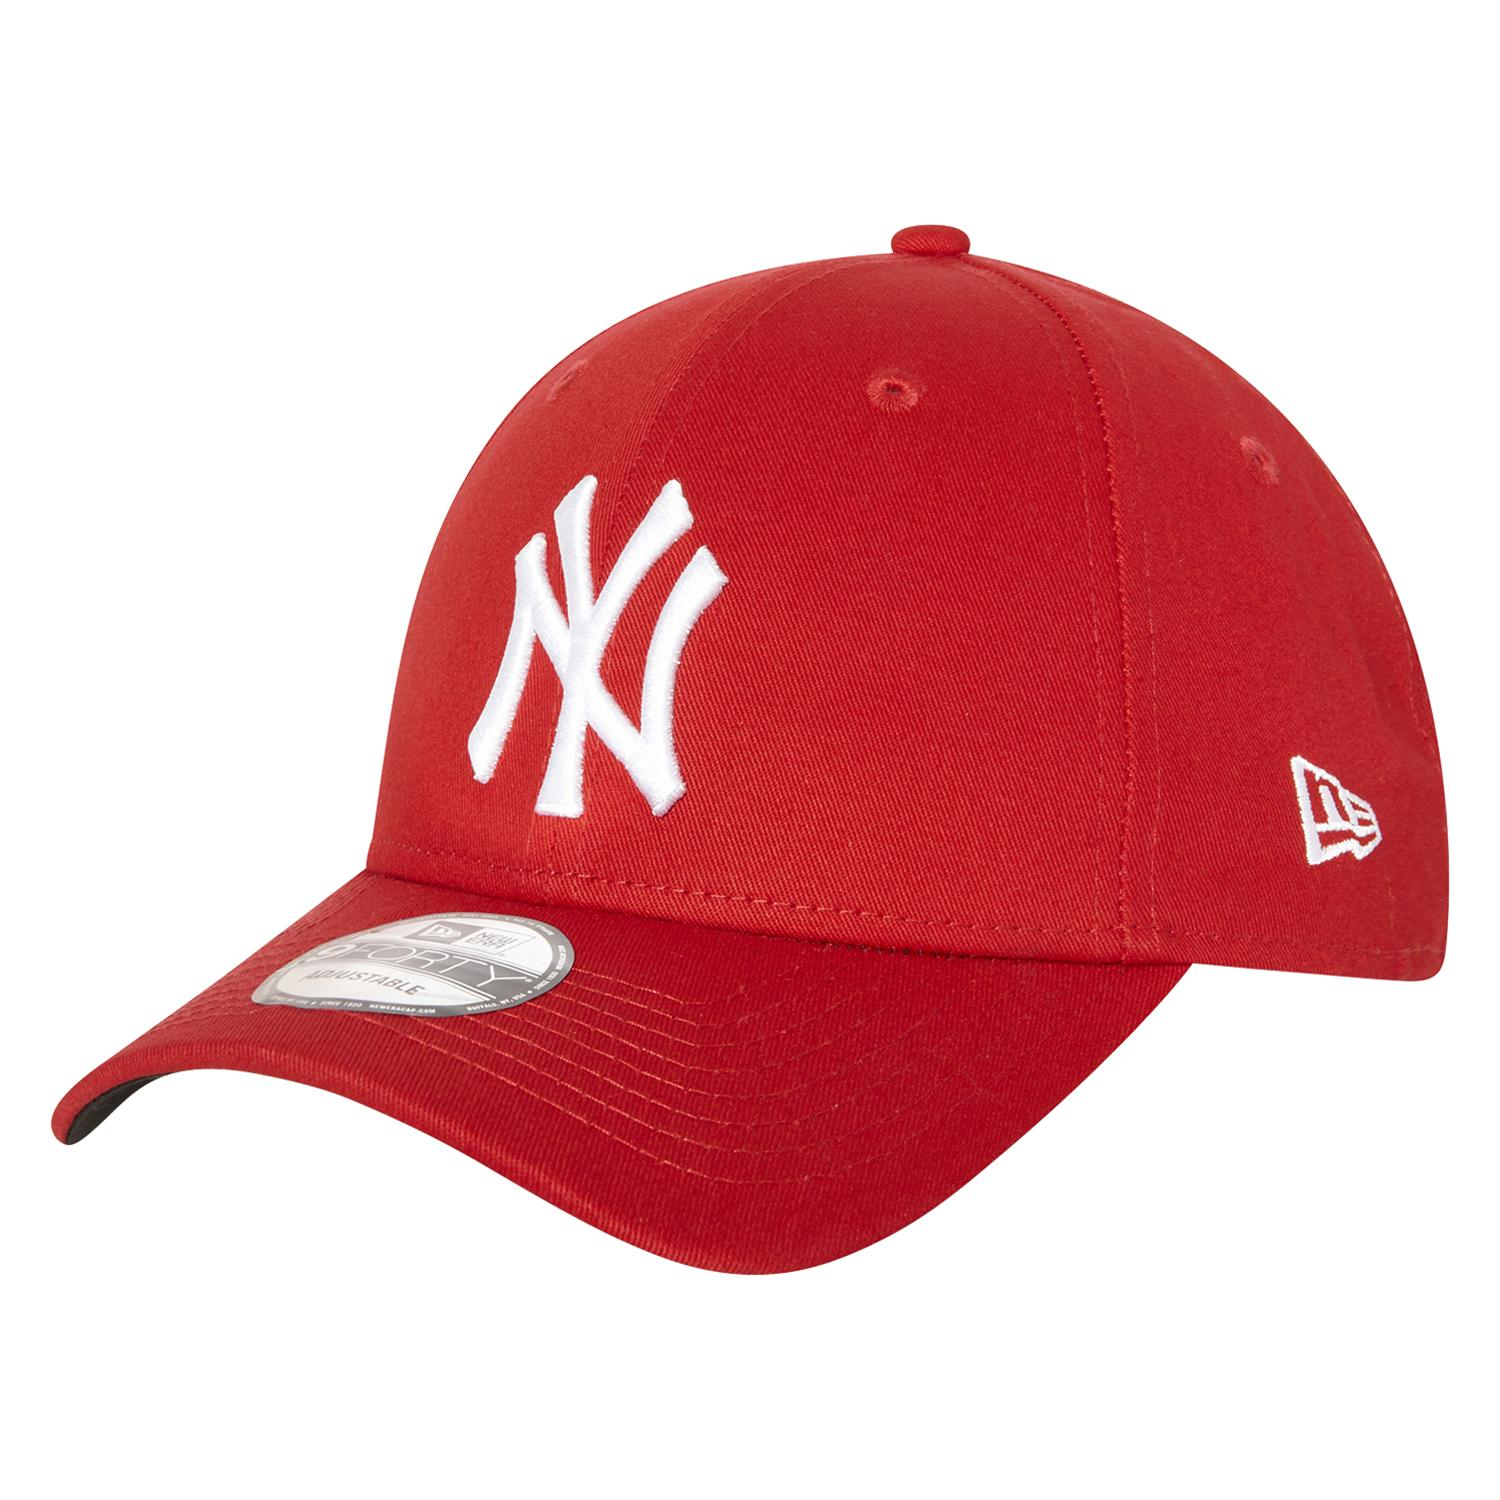 free shipping eb07a 1fc50 ... loading zoom e1ba5 dc80b  clearance new era 9forty new york yankees cap  in red intersport australia a719b c2233